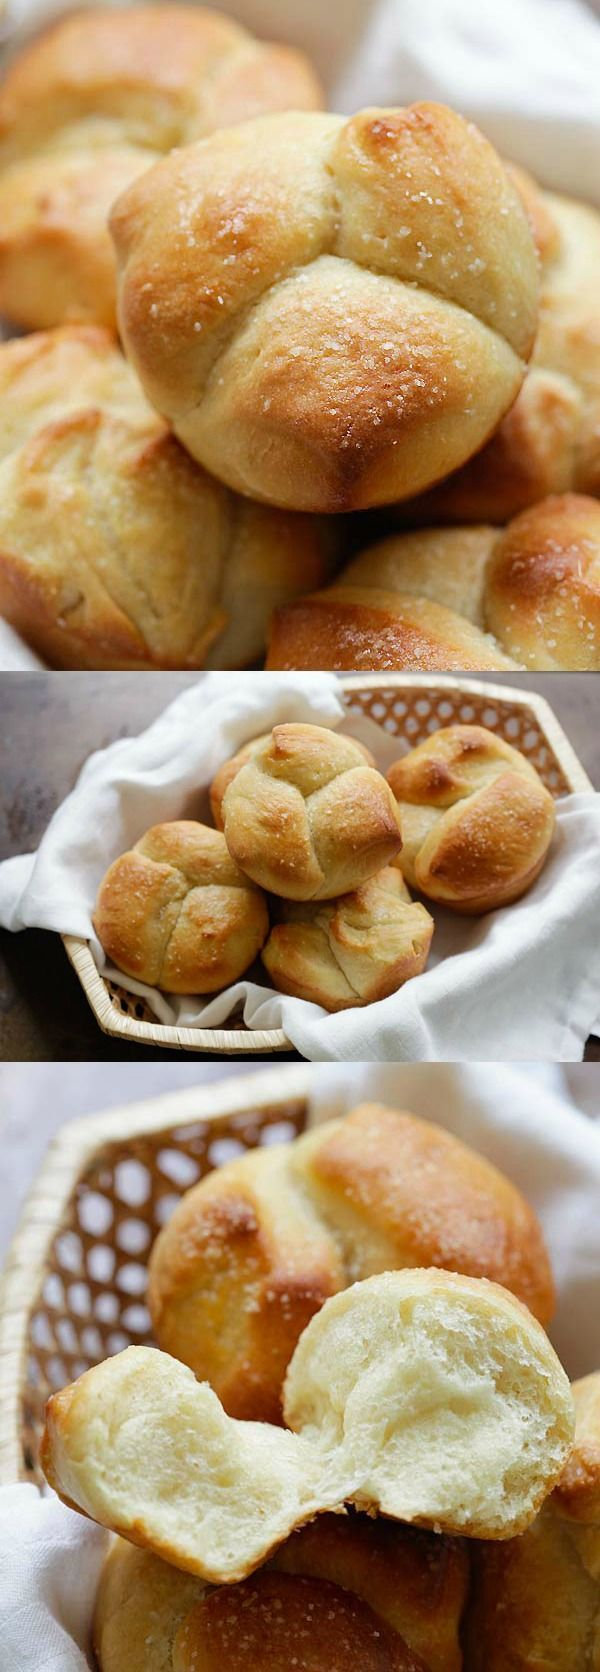 Milk Bread – Japanese-inspired milk bread that is cotton soft, sweet and delicious. Using roux method, this milk bread recipe is a keeper | http://rasamalaysia.com